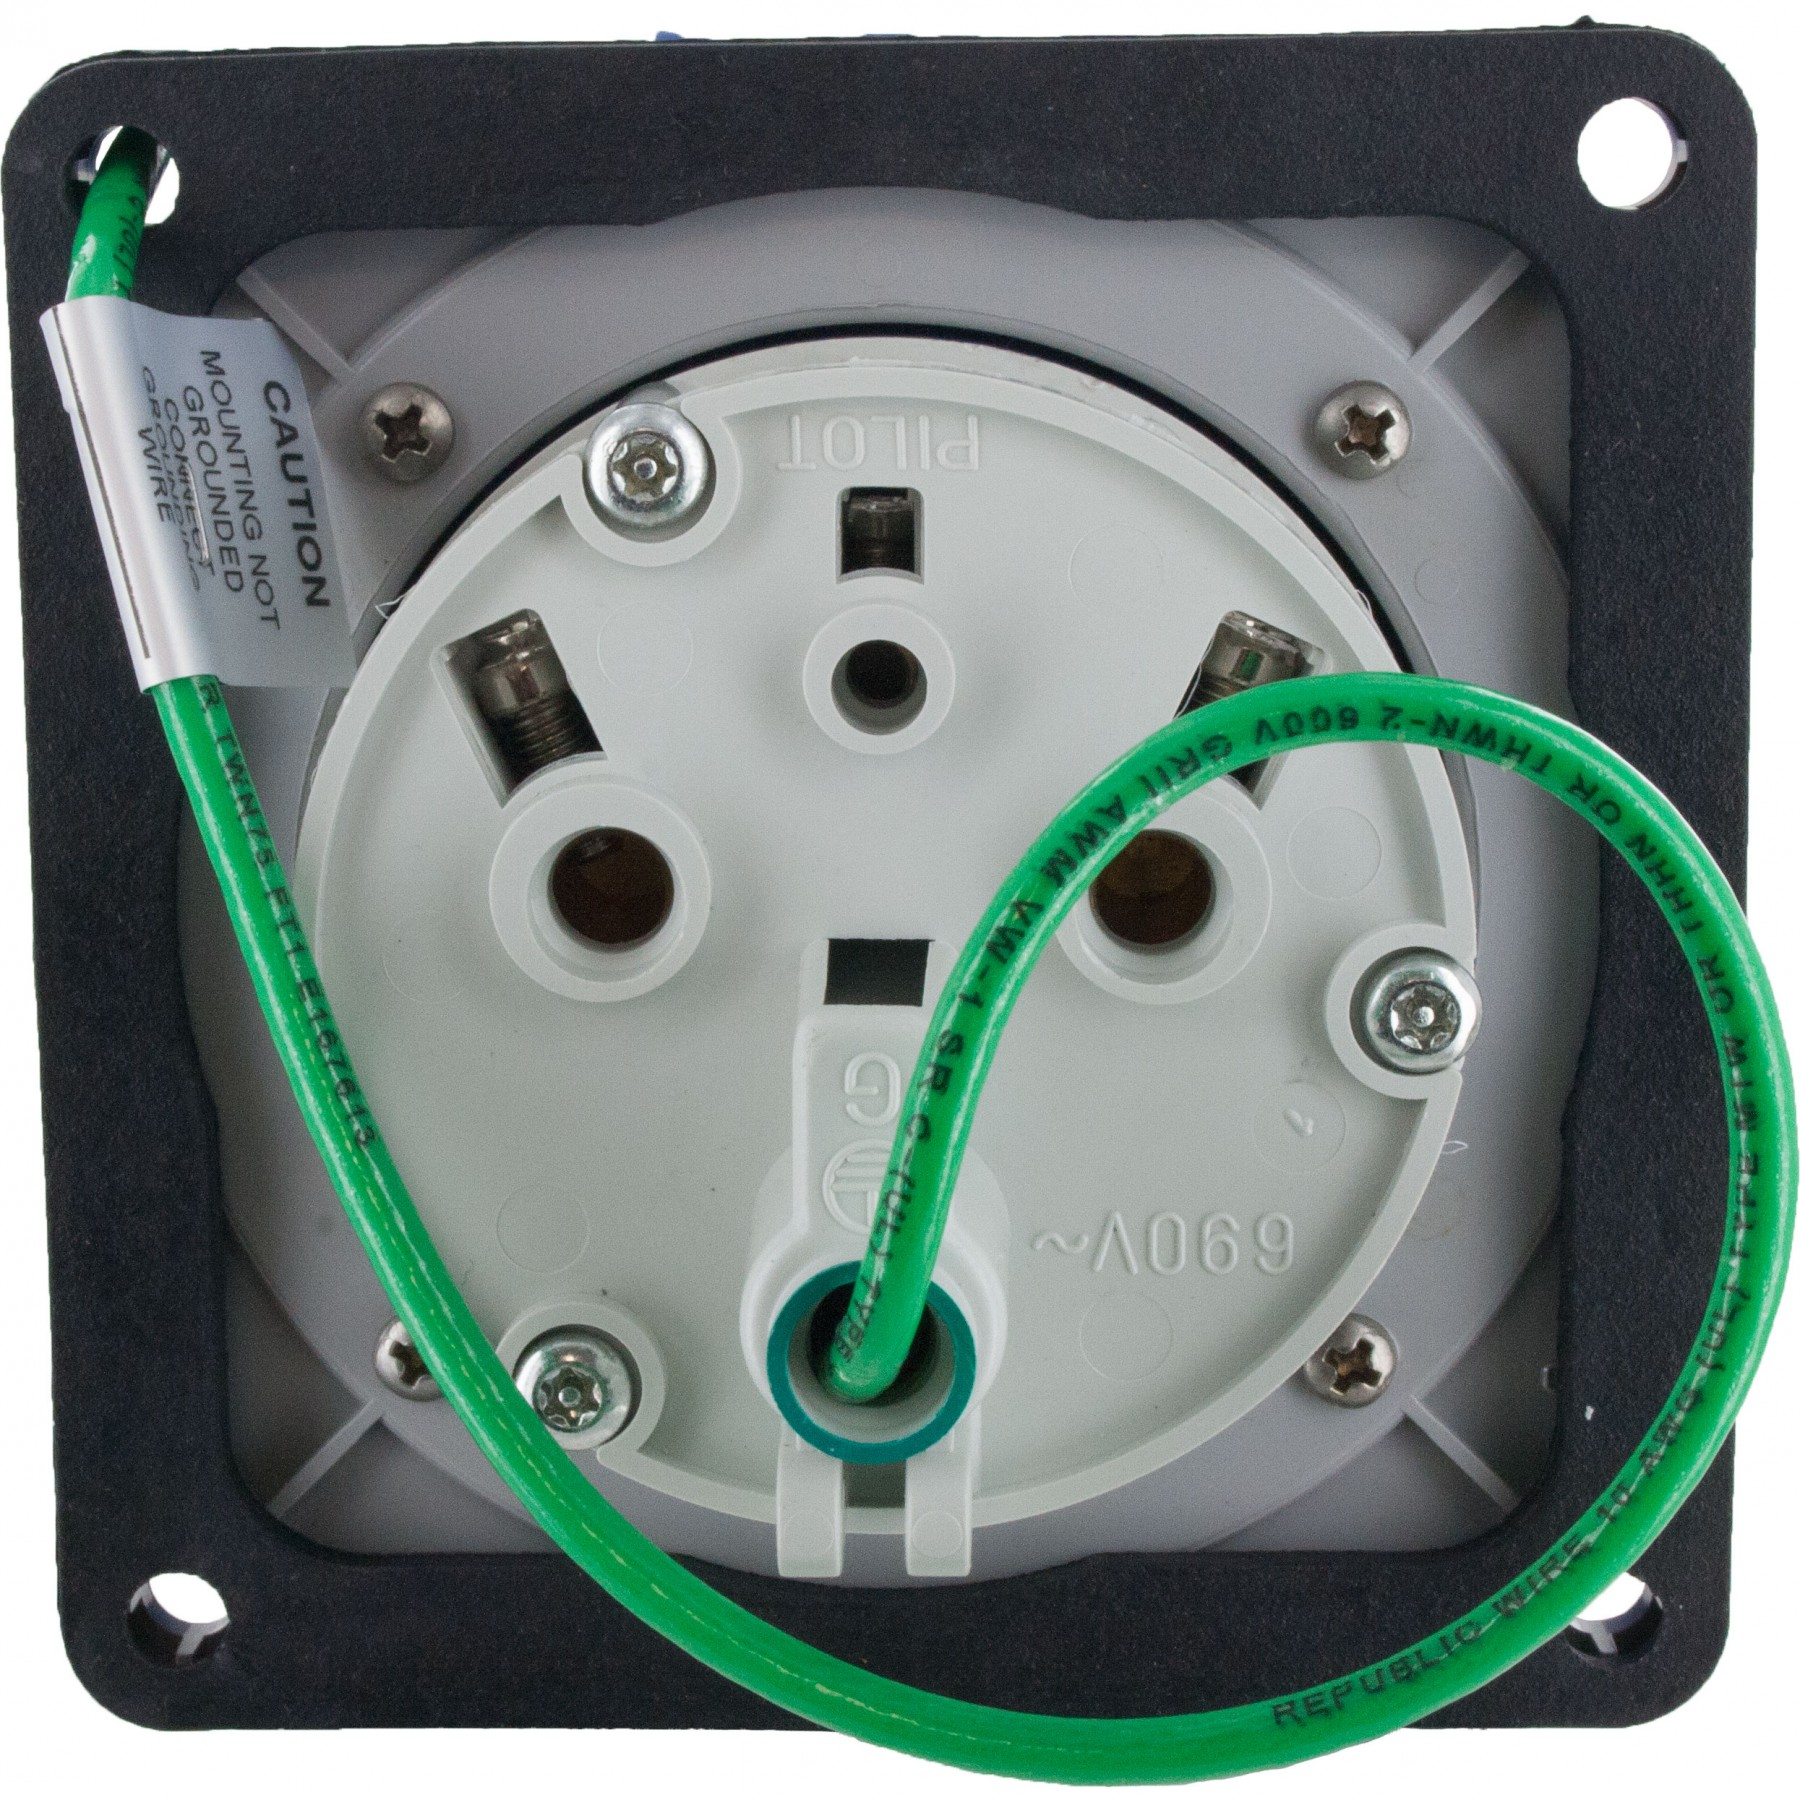 360r6w Pin And Sleeve Receptacle 60 Amp 2 Pole 3 Wire Elecdirect Wiring Receptacles In Series More Views